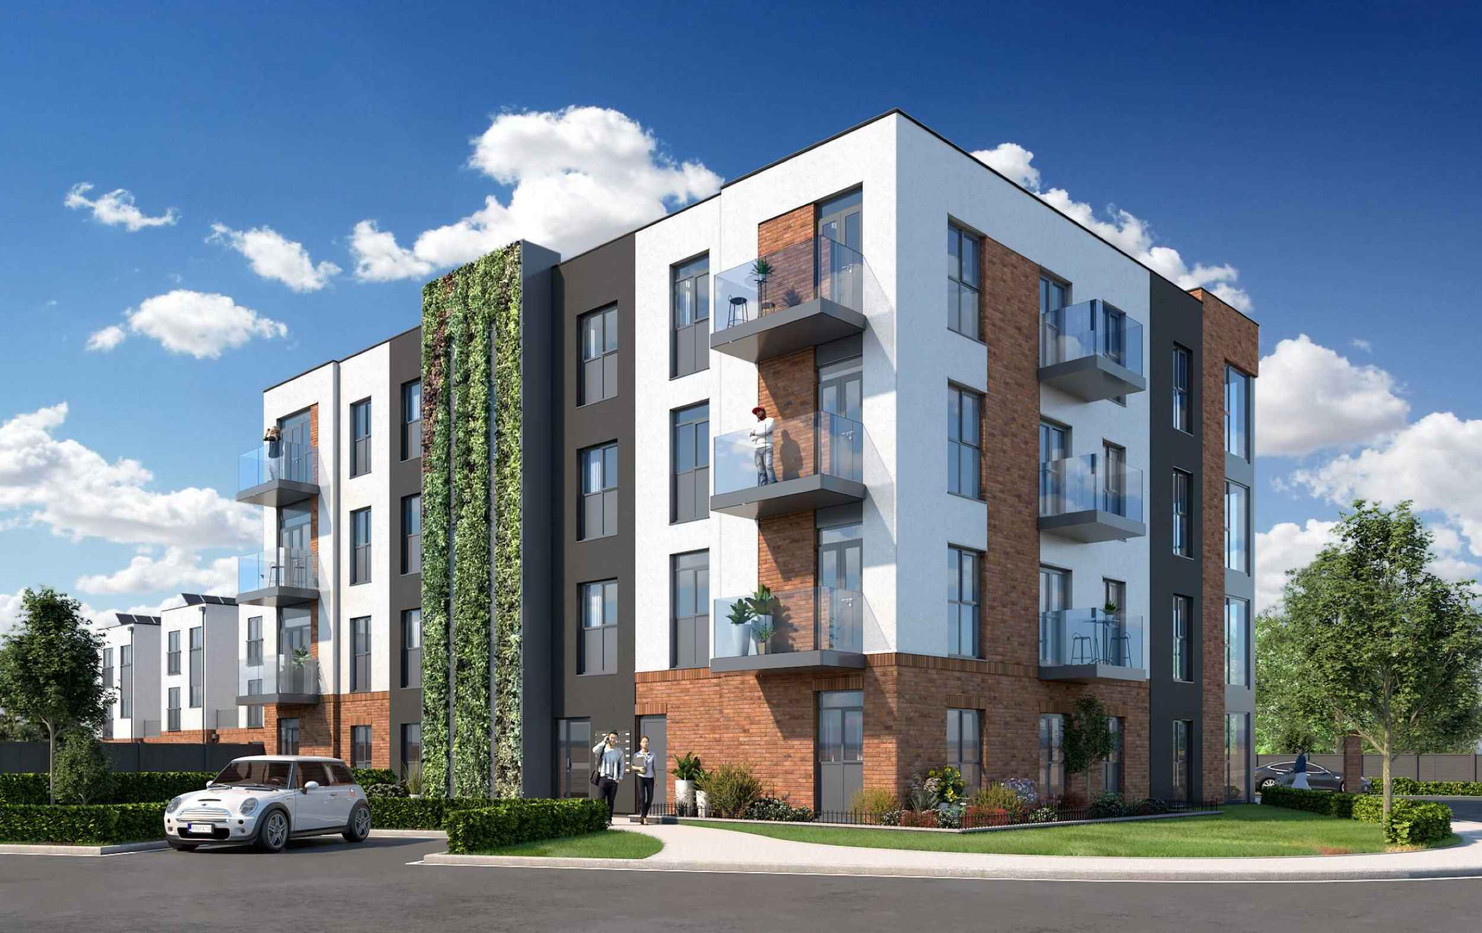 4 story eco living apartment building with greenery and plants around building.